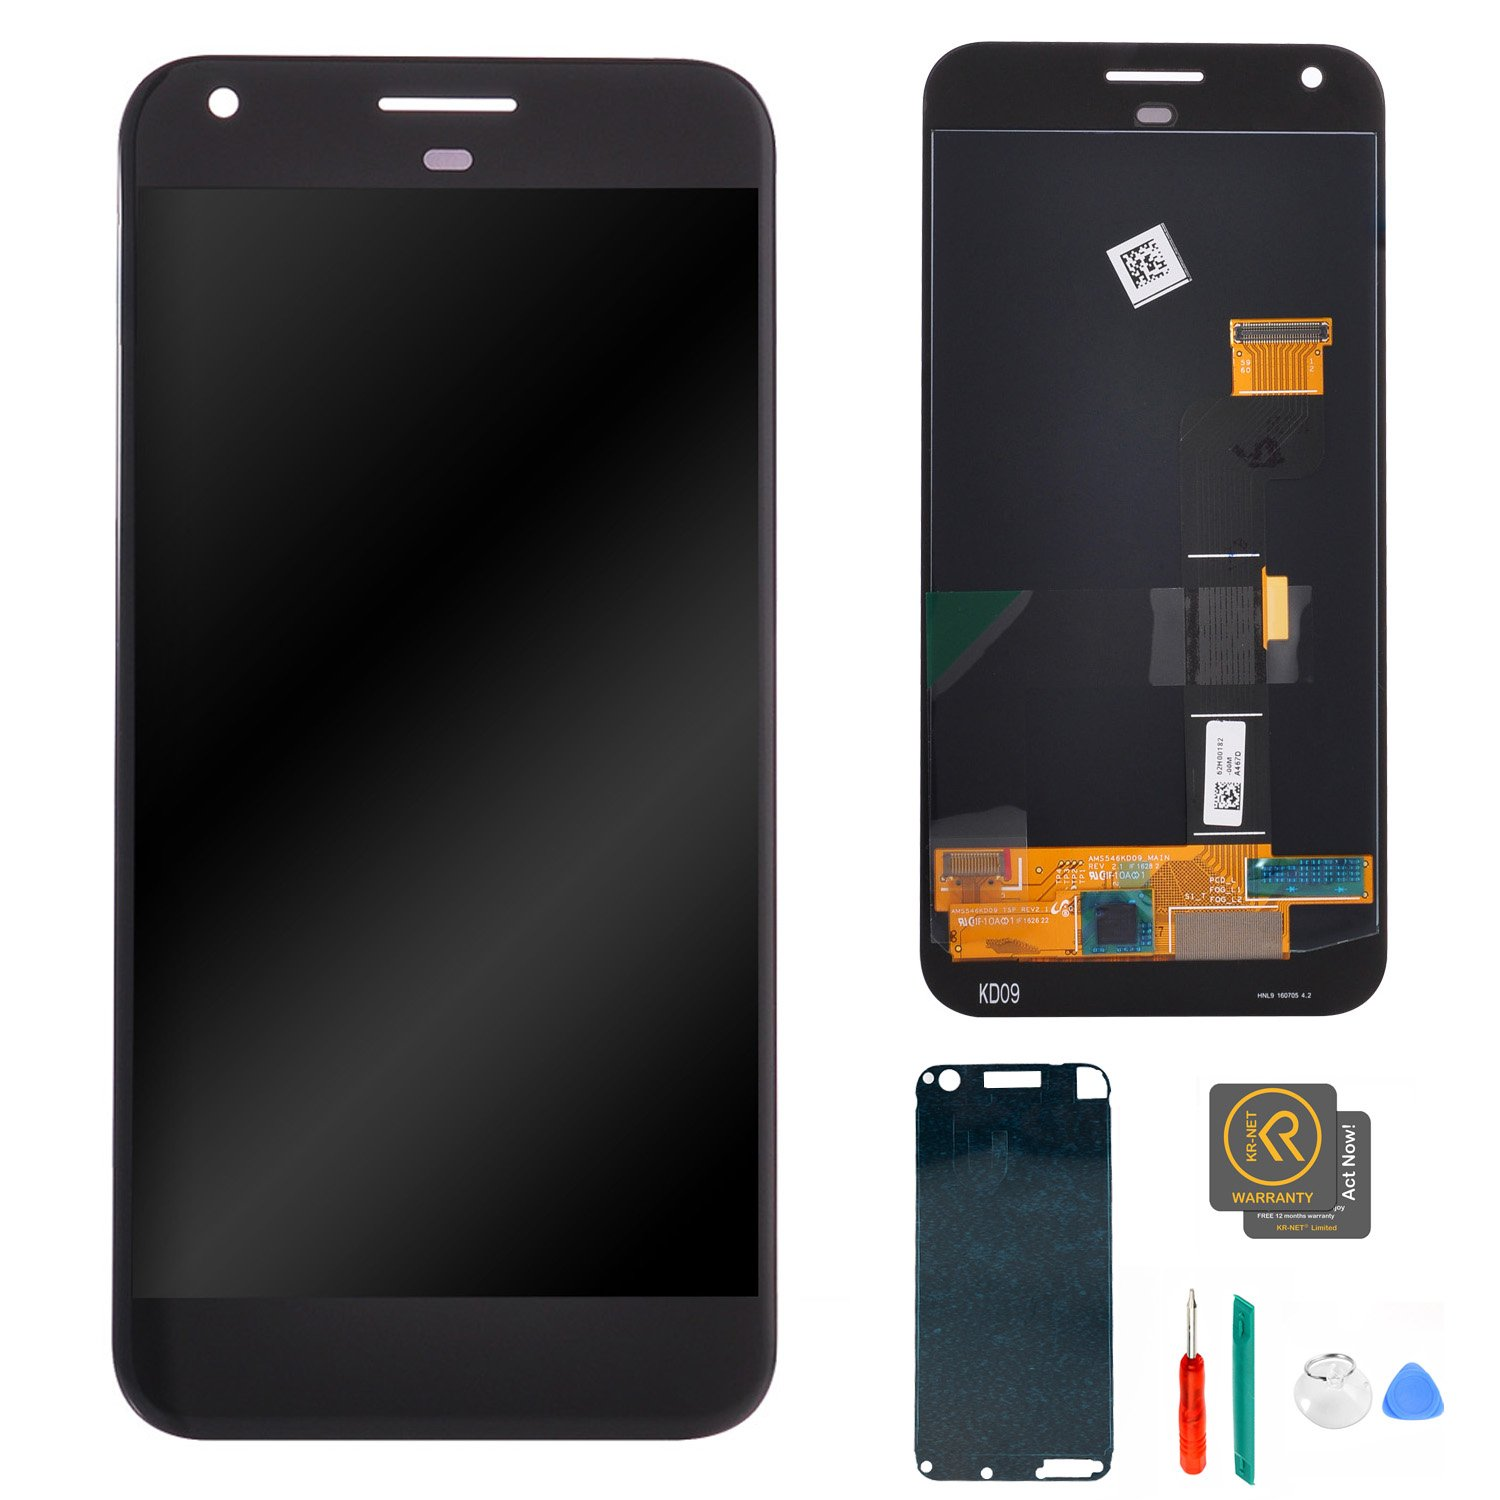 KR-NET 5.5'' LCD Display Touch Screen Digitizer Assembly for Google Pixel XL (Quite Black), with Tools